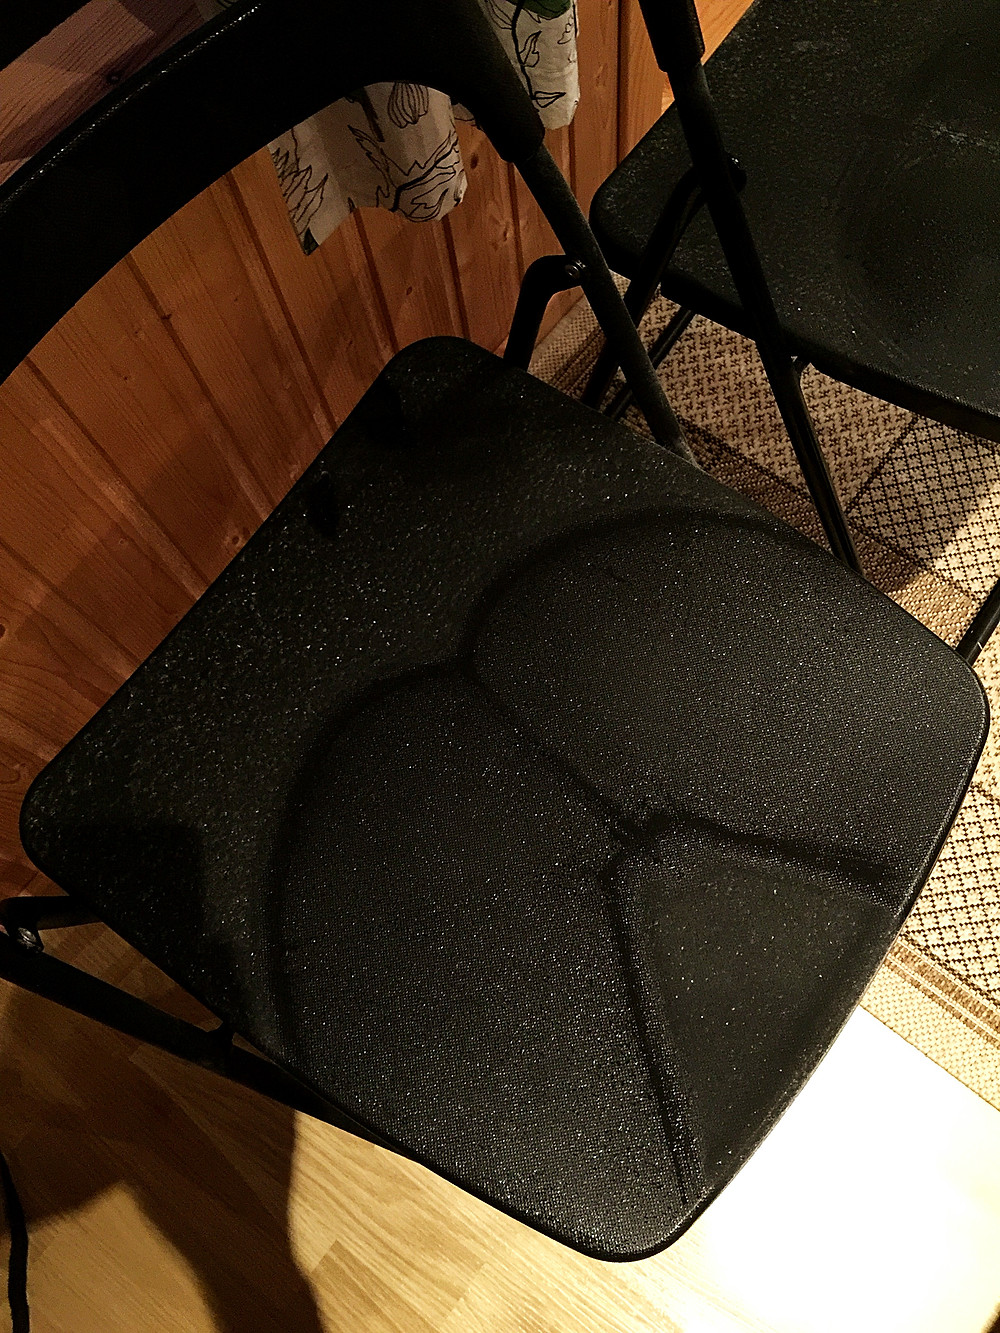 Funny moment when I bring in a overnight chair from outside for our breakfast, and it was sticky when I try to stand up as there are ice on it! Well, this is the shape of my asses~